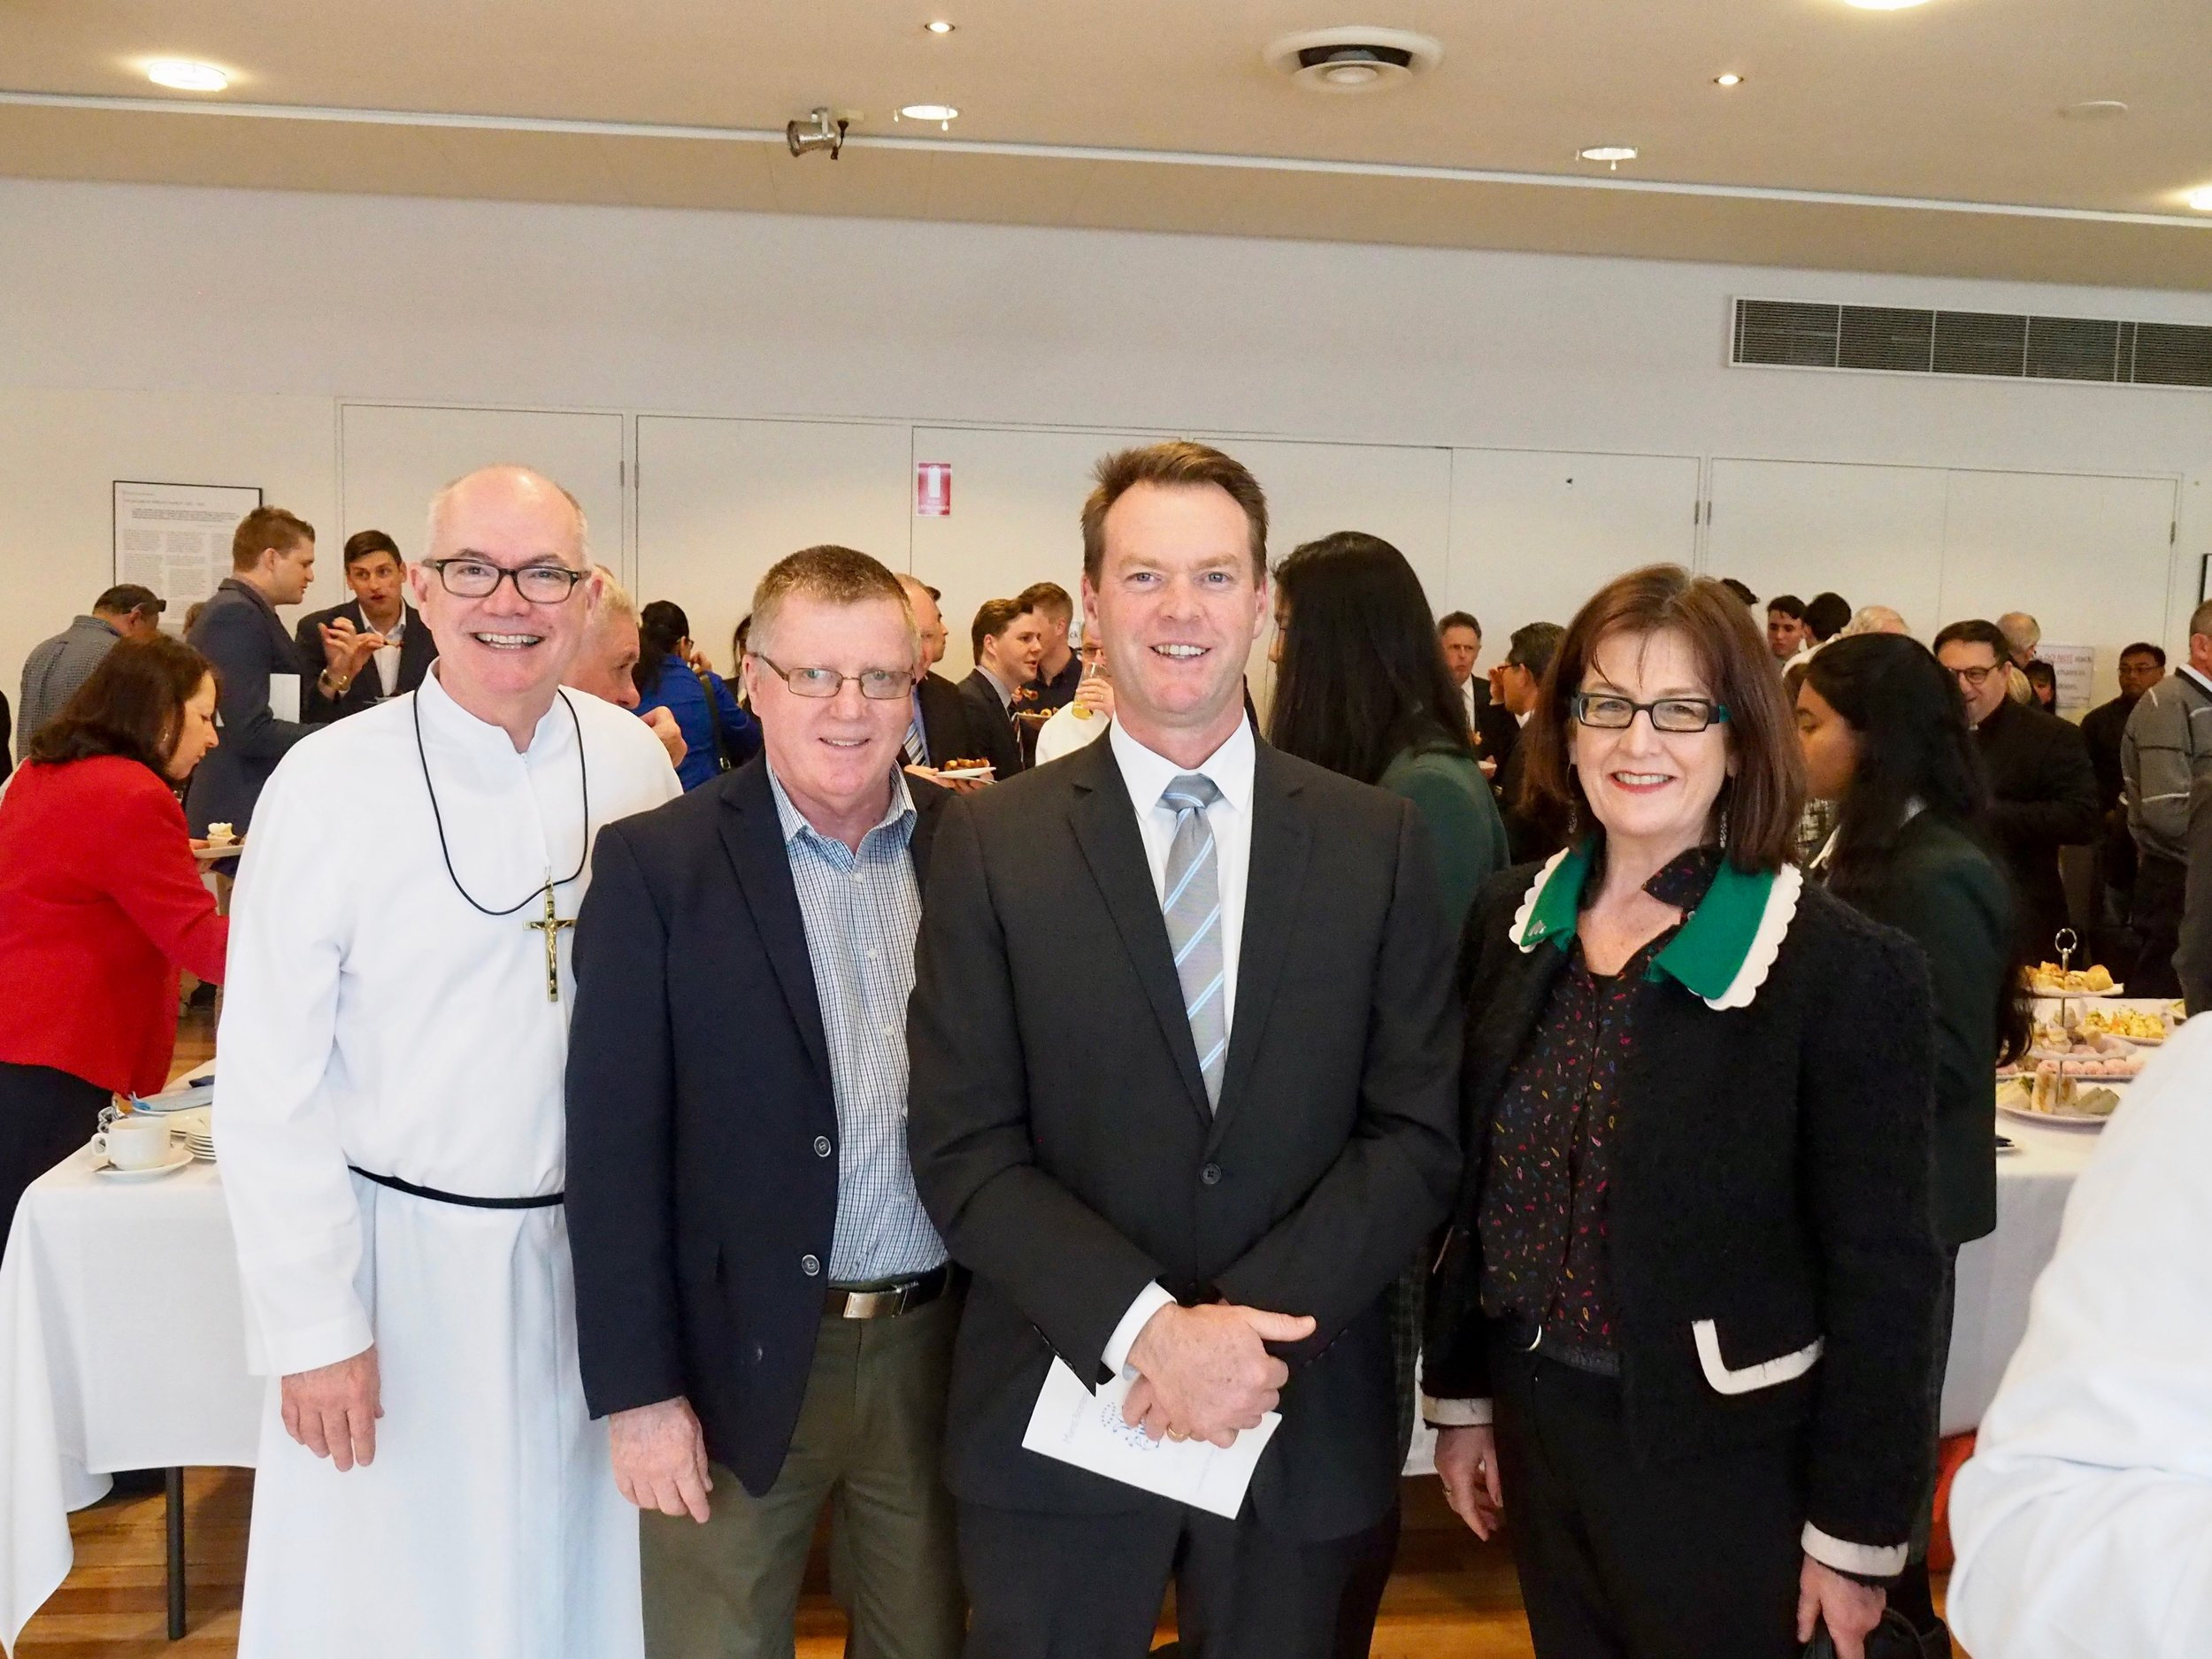 Bicentenary Mass Sydney 12 Aug 2017 Photos by Paul Harris 00141.jpg